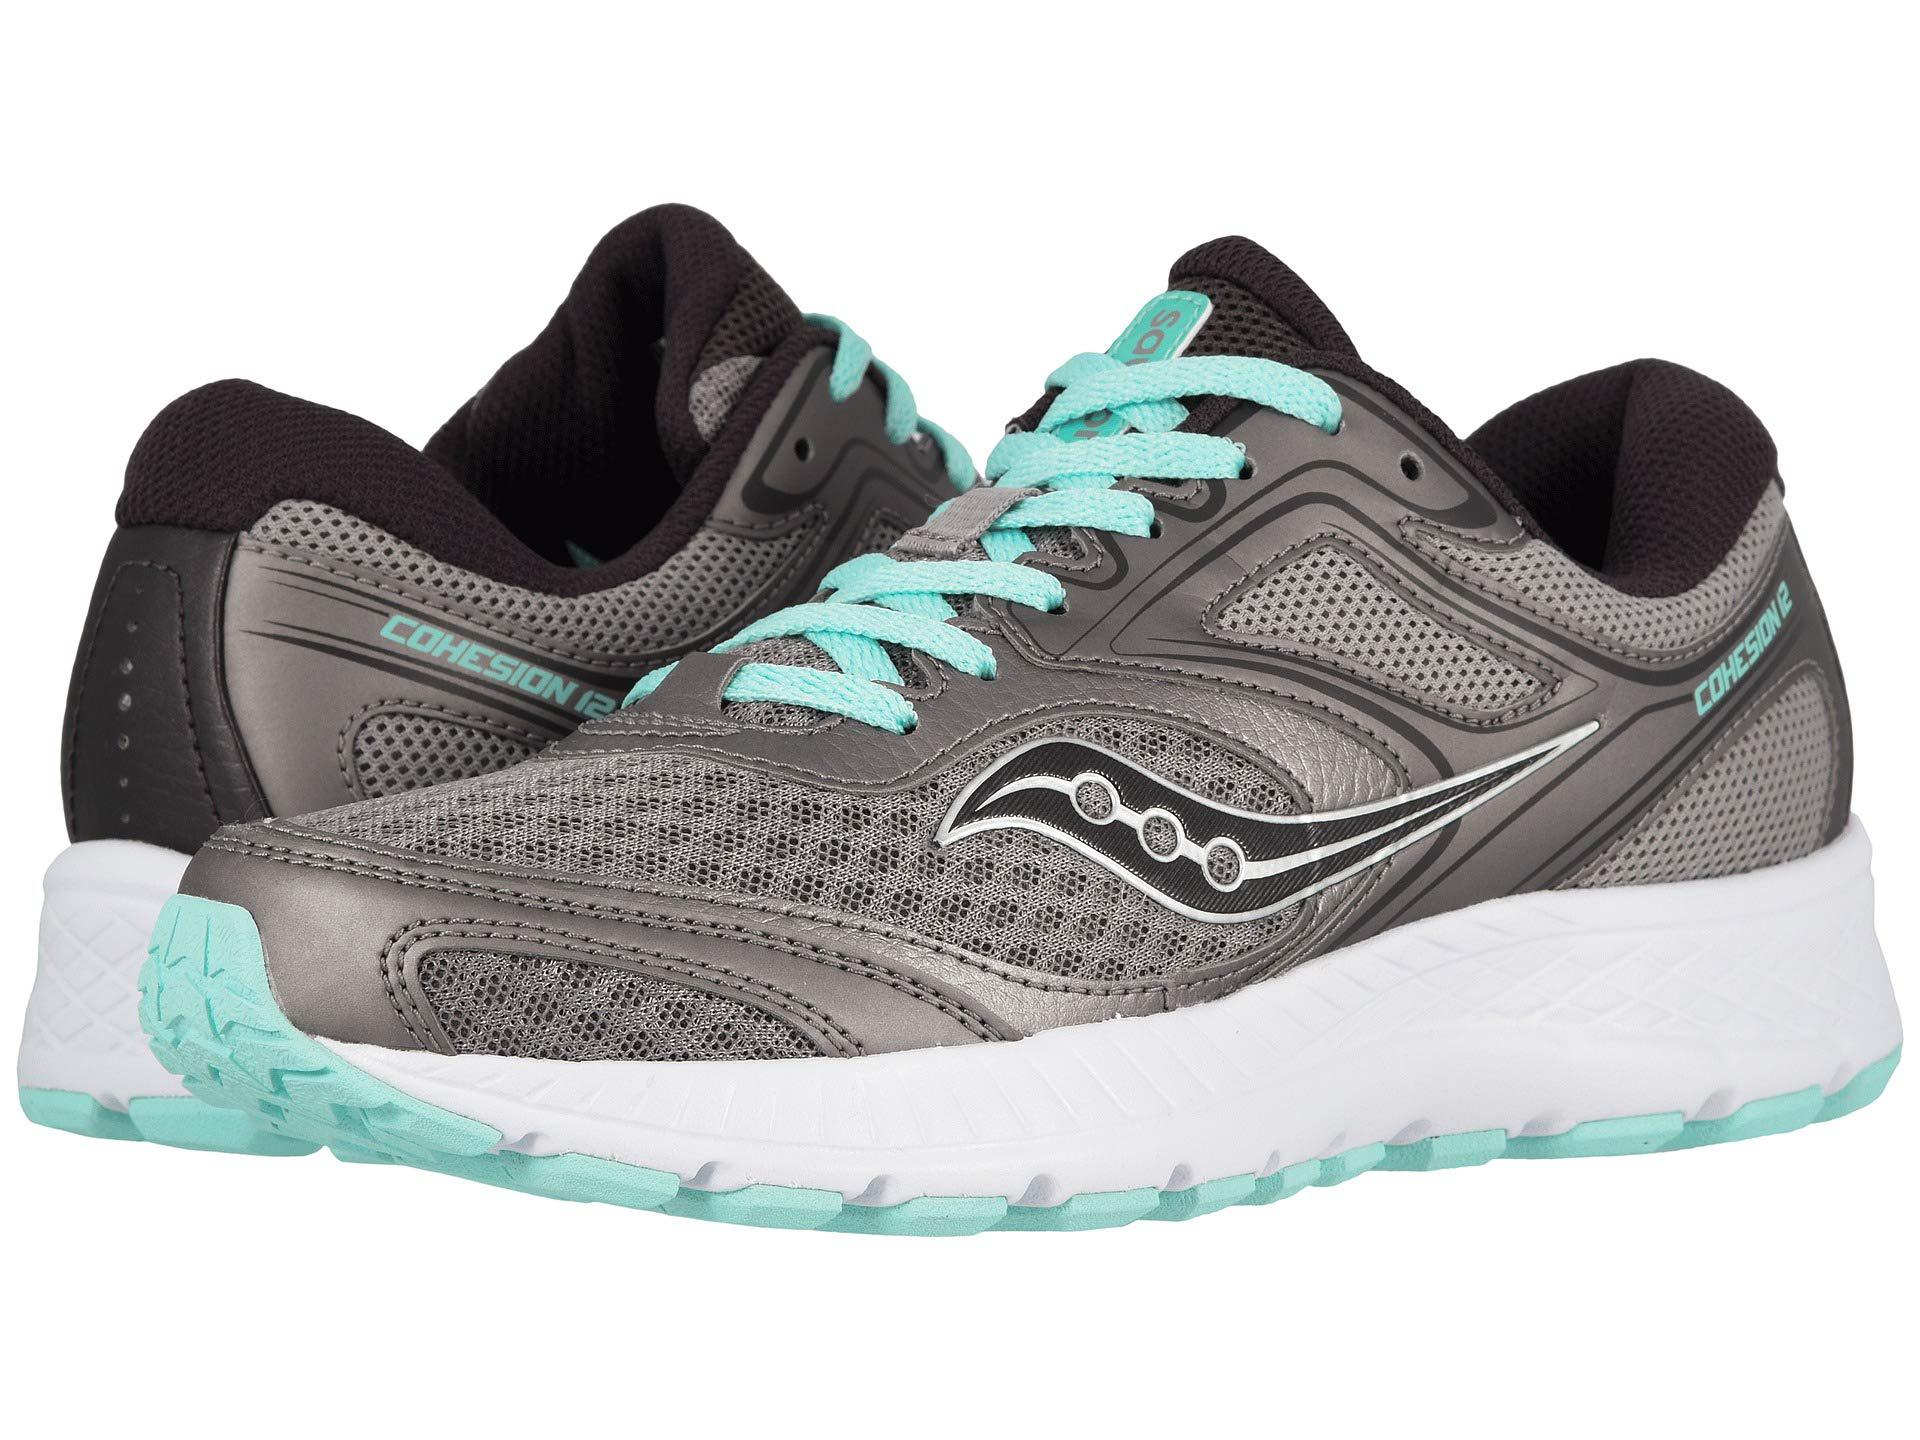 37e3251f4527 Lyst - Saucony Versafoam Cohesion 12 (grey teal) Women s Shoes in Gray